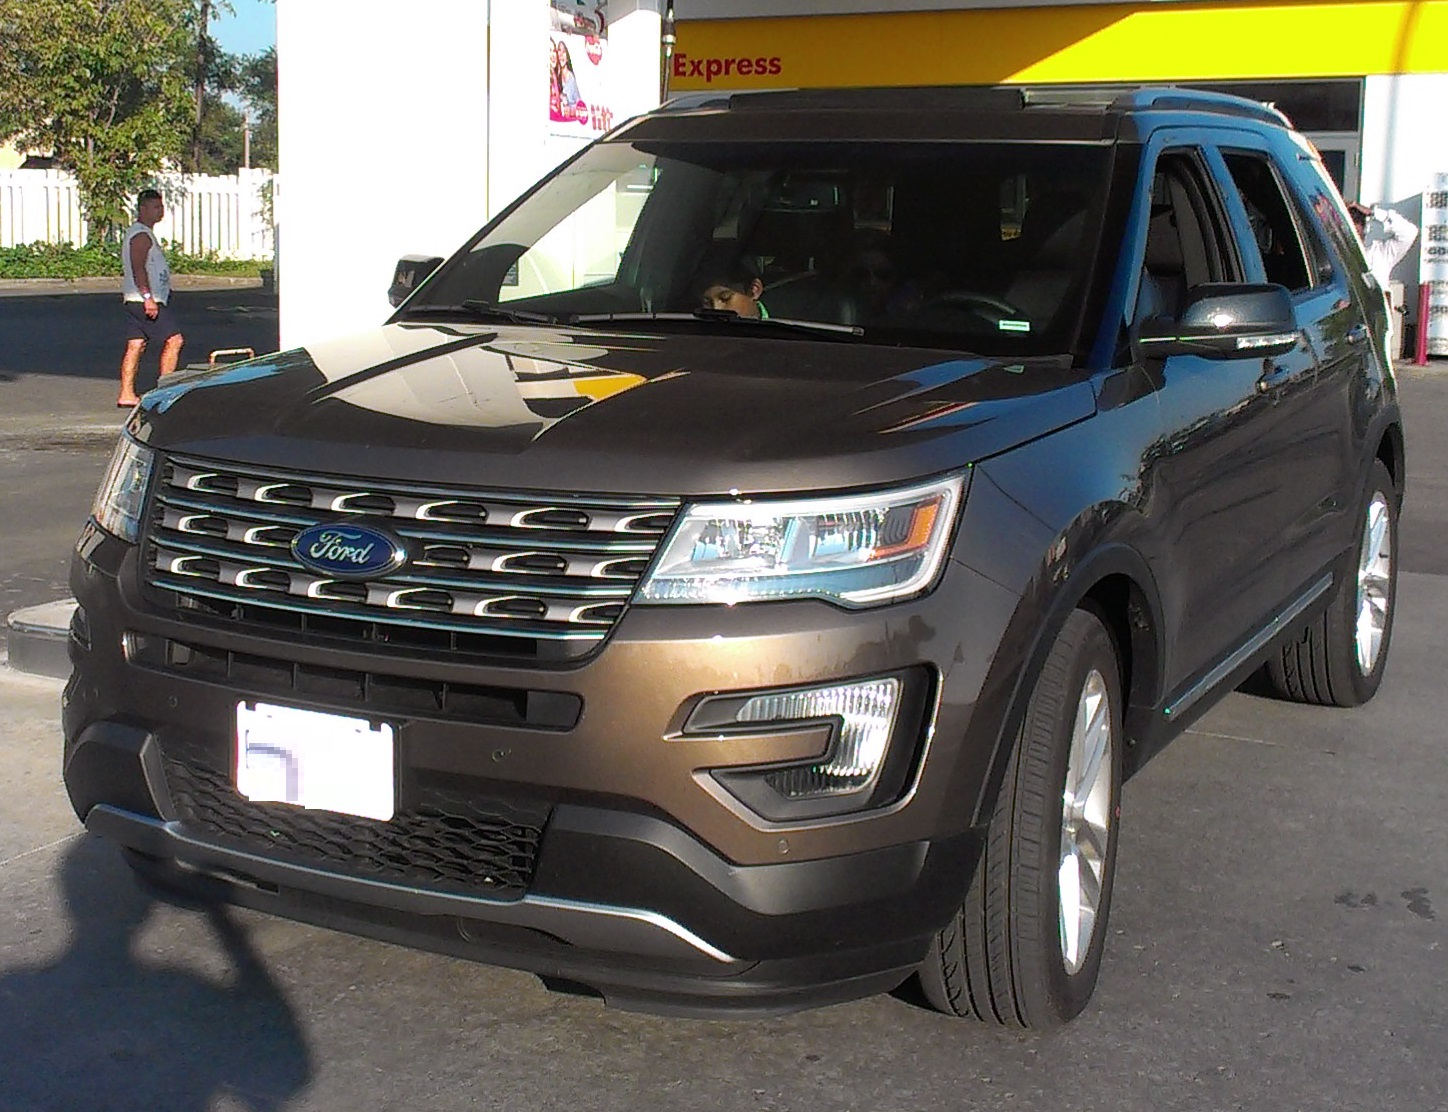 https://upload.wikimedia.org/wikipedia/commons/2/26/Ford_Explorer_'16.jpg